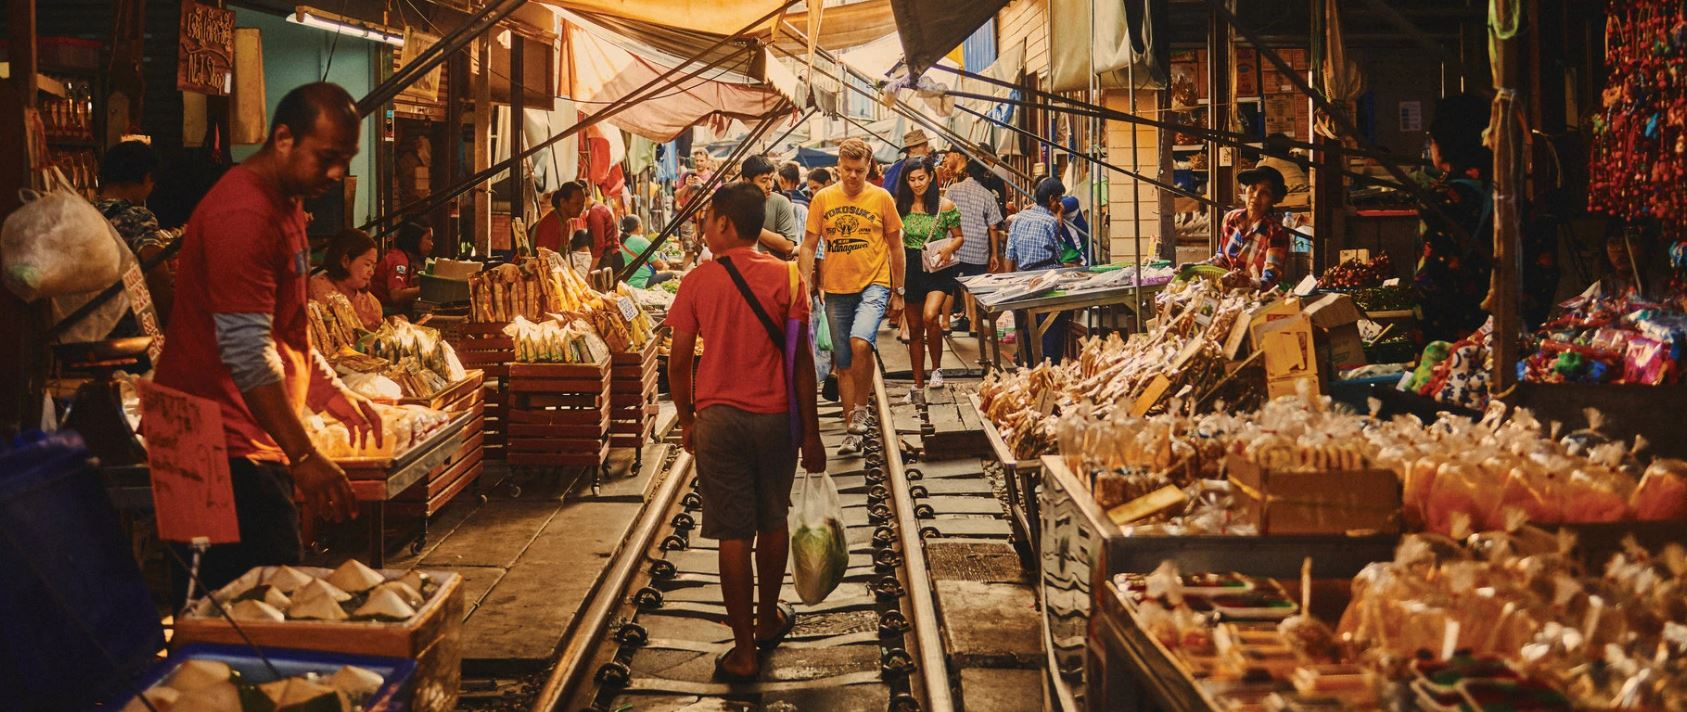 Finding Euphoria in Bangkok's Food Scene - New York Photographs and Text by Louise PalmbergTimes June 1 2020